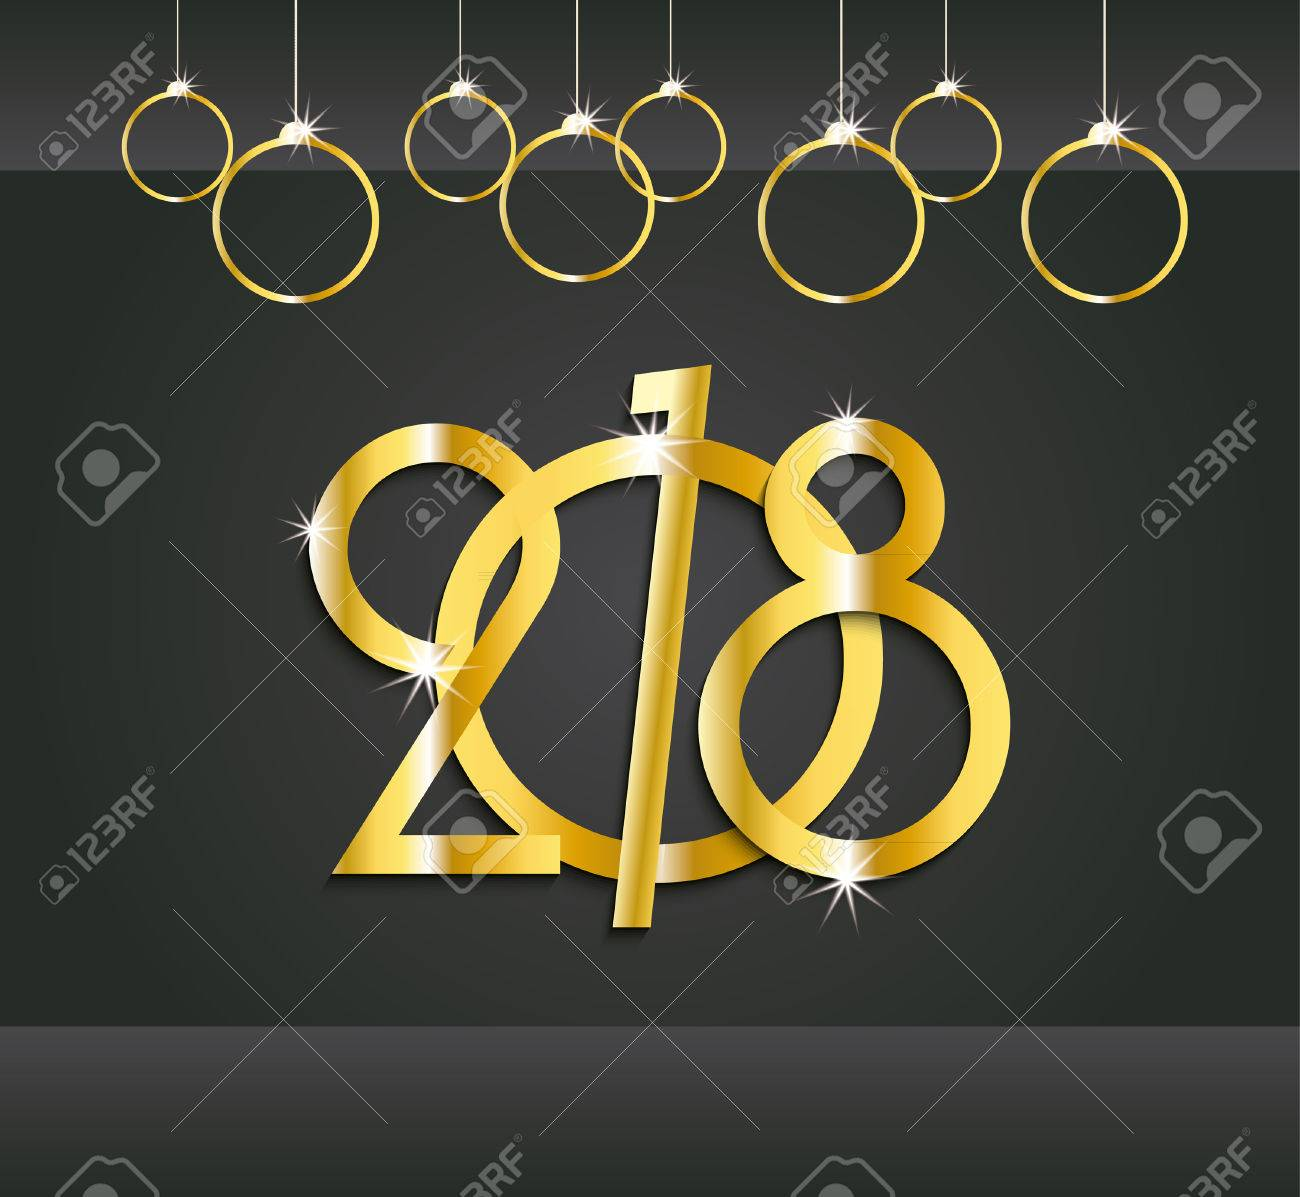 2018 new year or christmas dark background creative design gold numbers for your greetings card